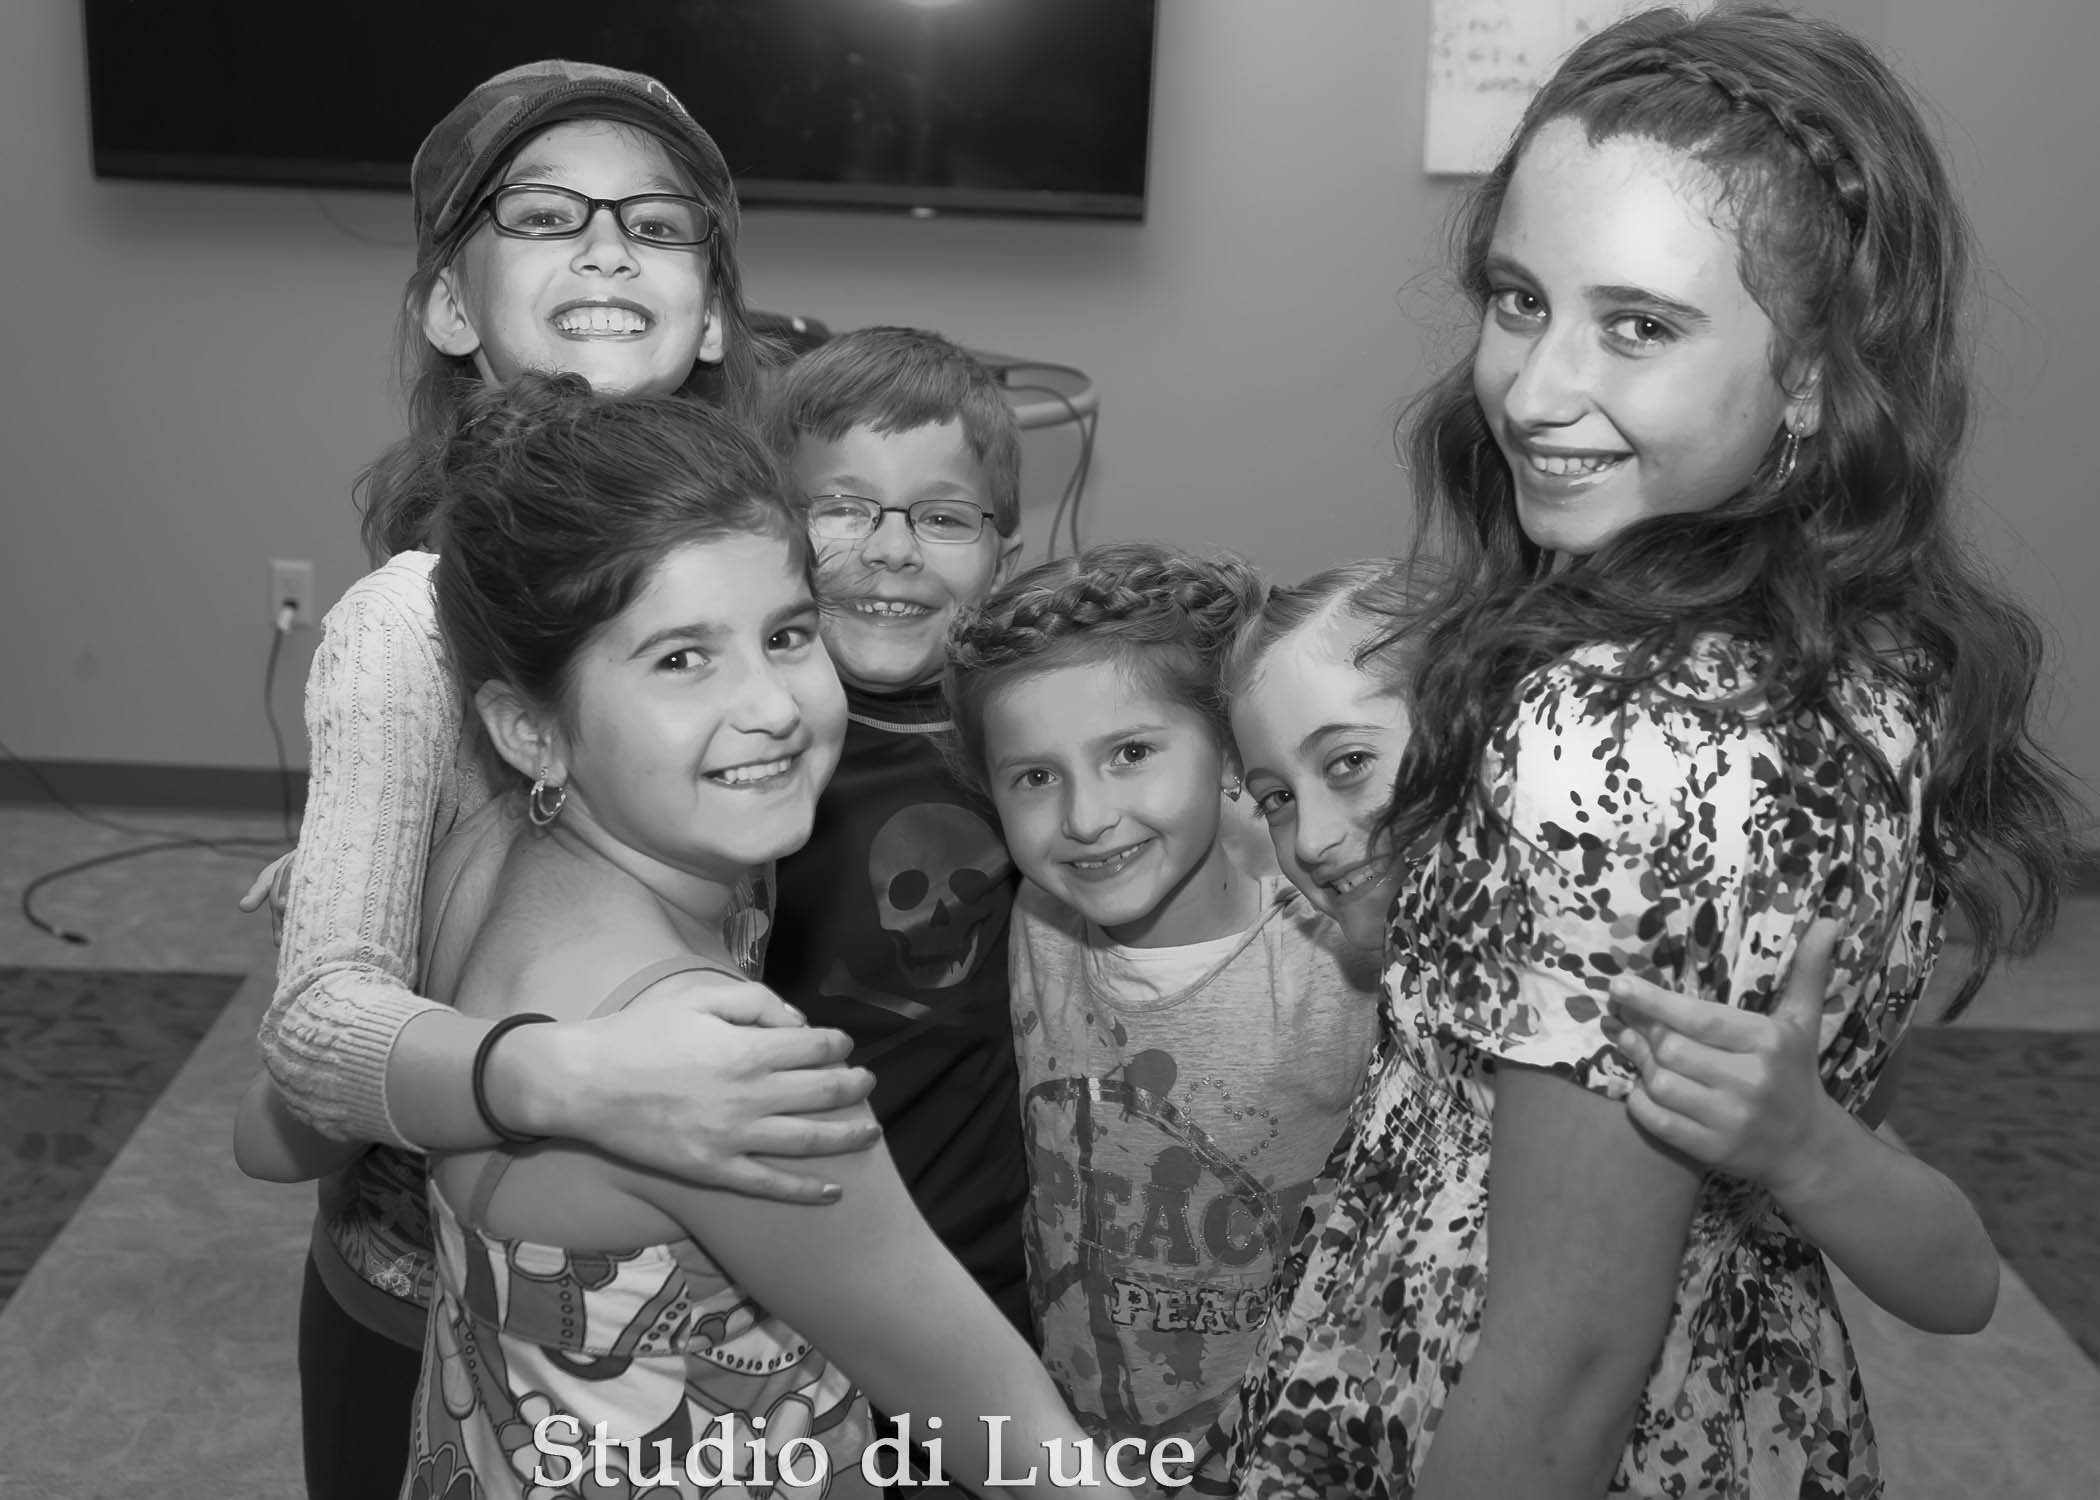 The child models hanging out backstage.